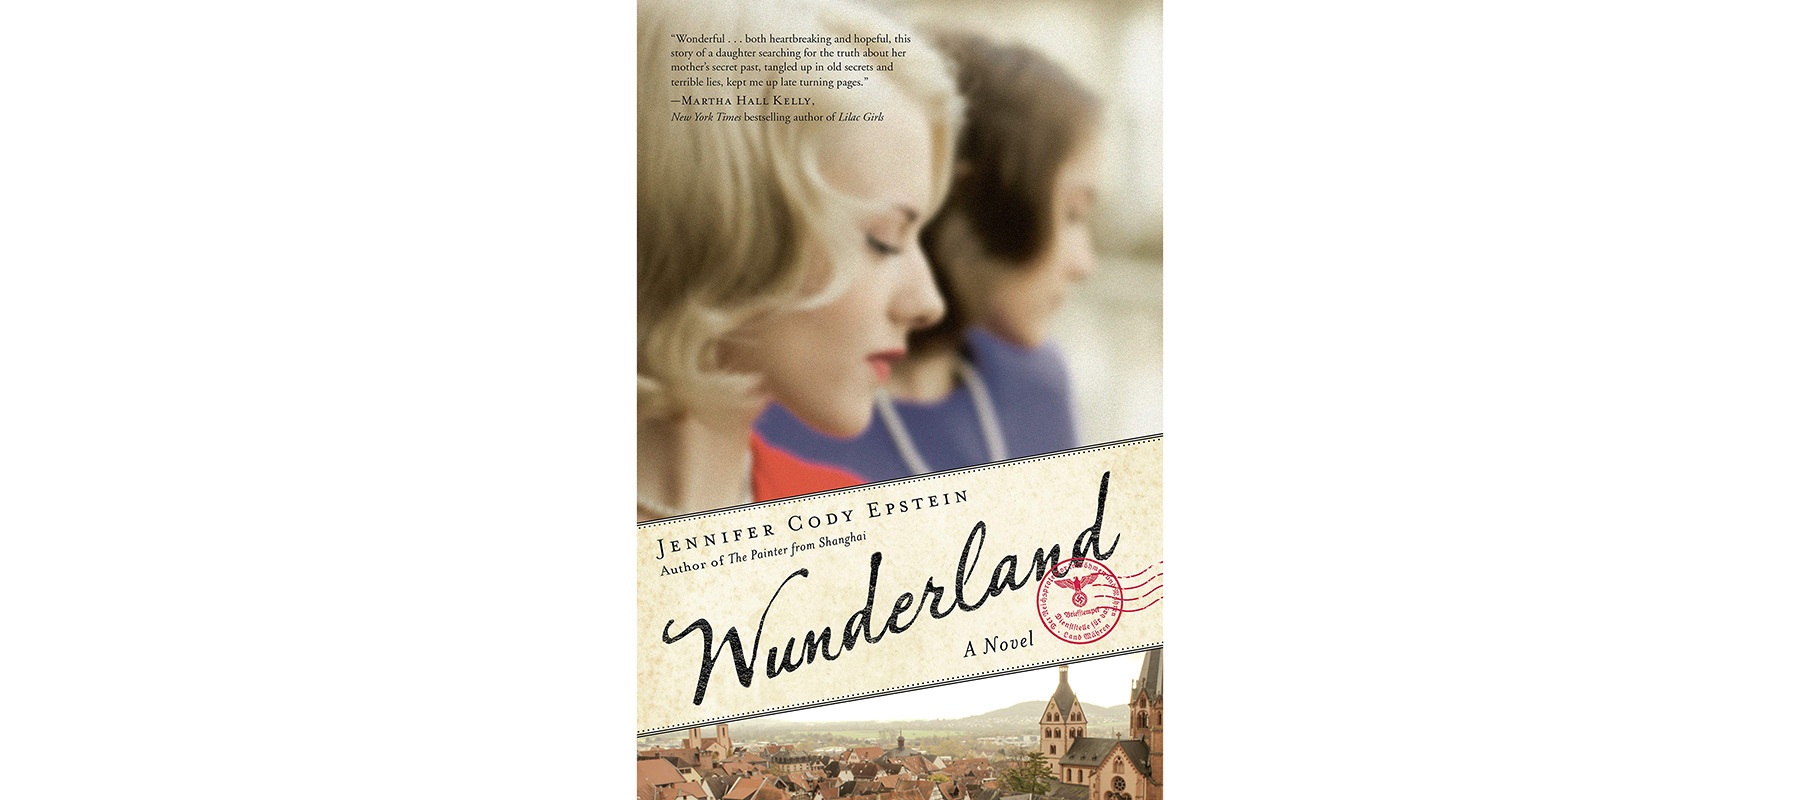 Cover of Wunderland, by Jennifer Cody Epstein